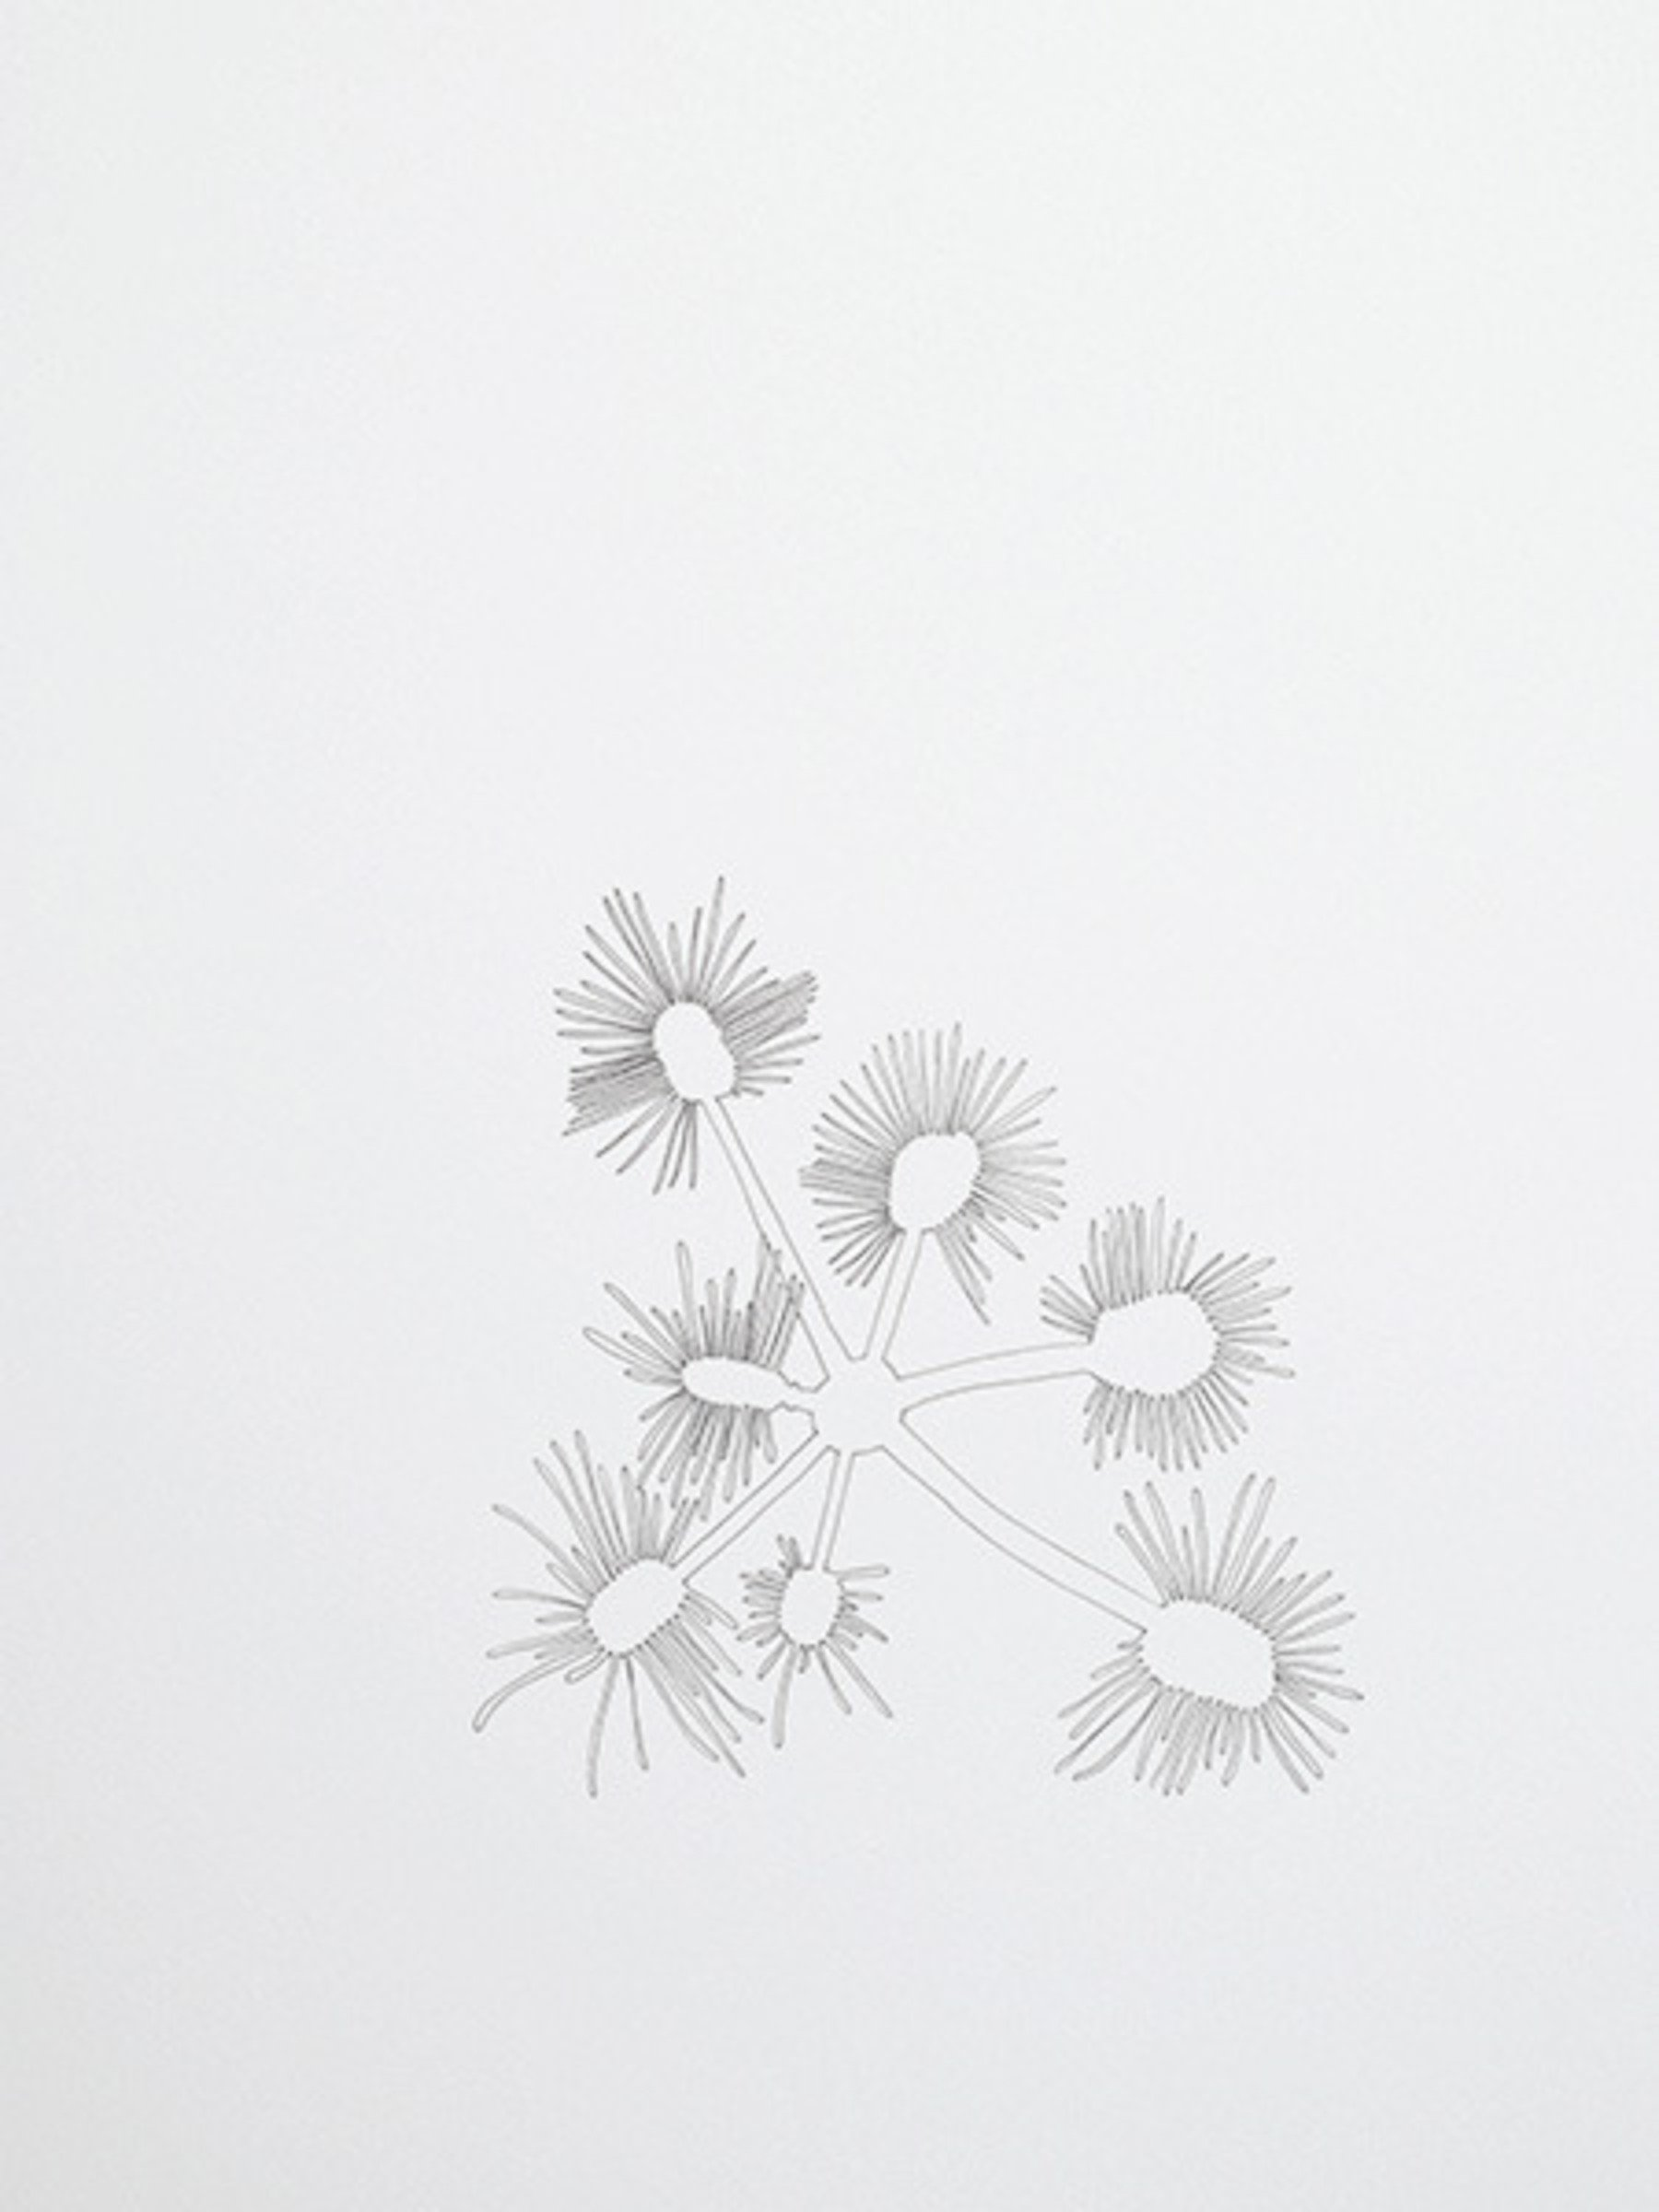 Colin Keefe, untitled (10004), 2012